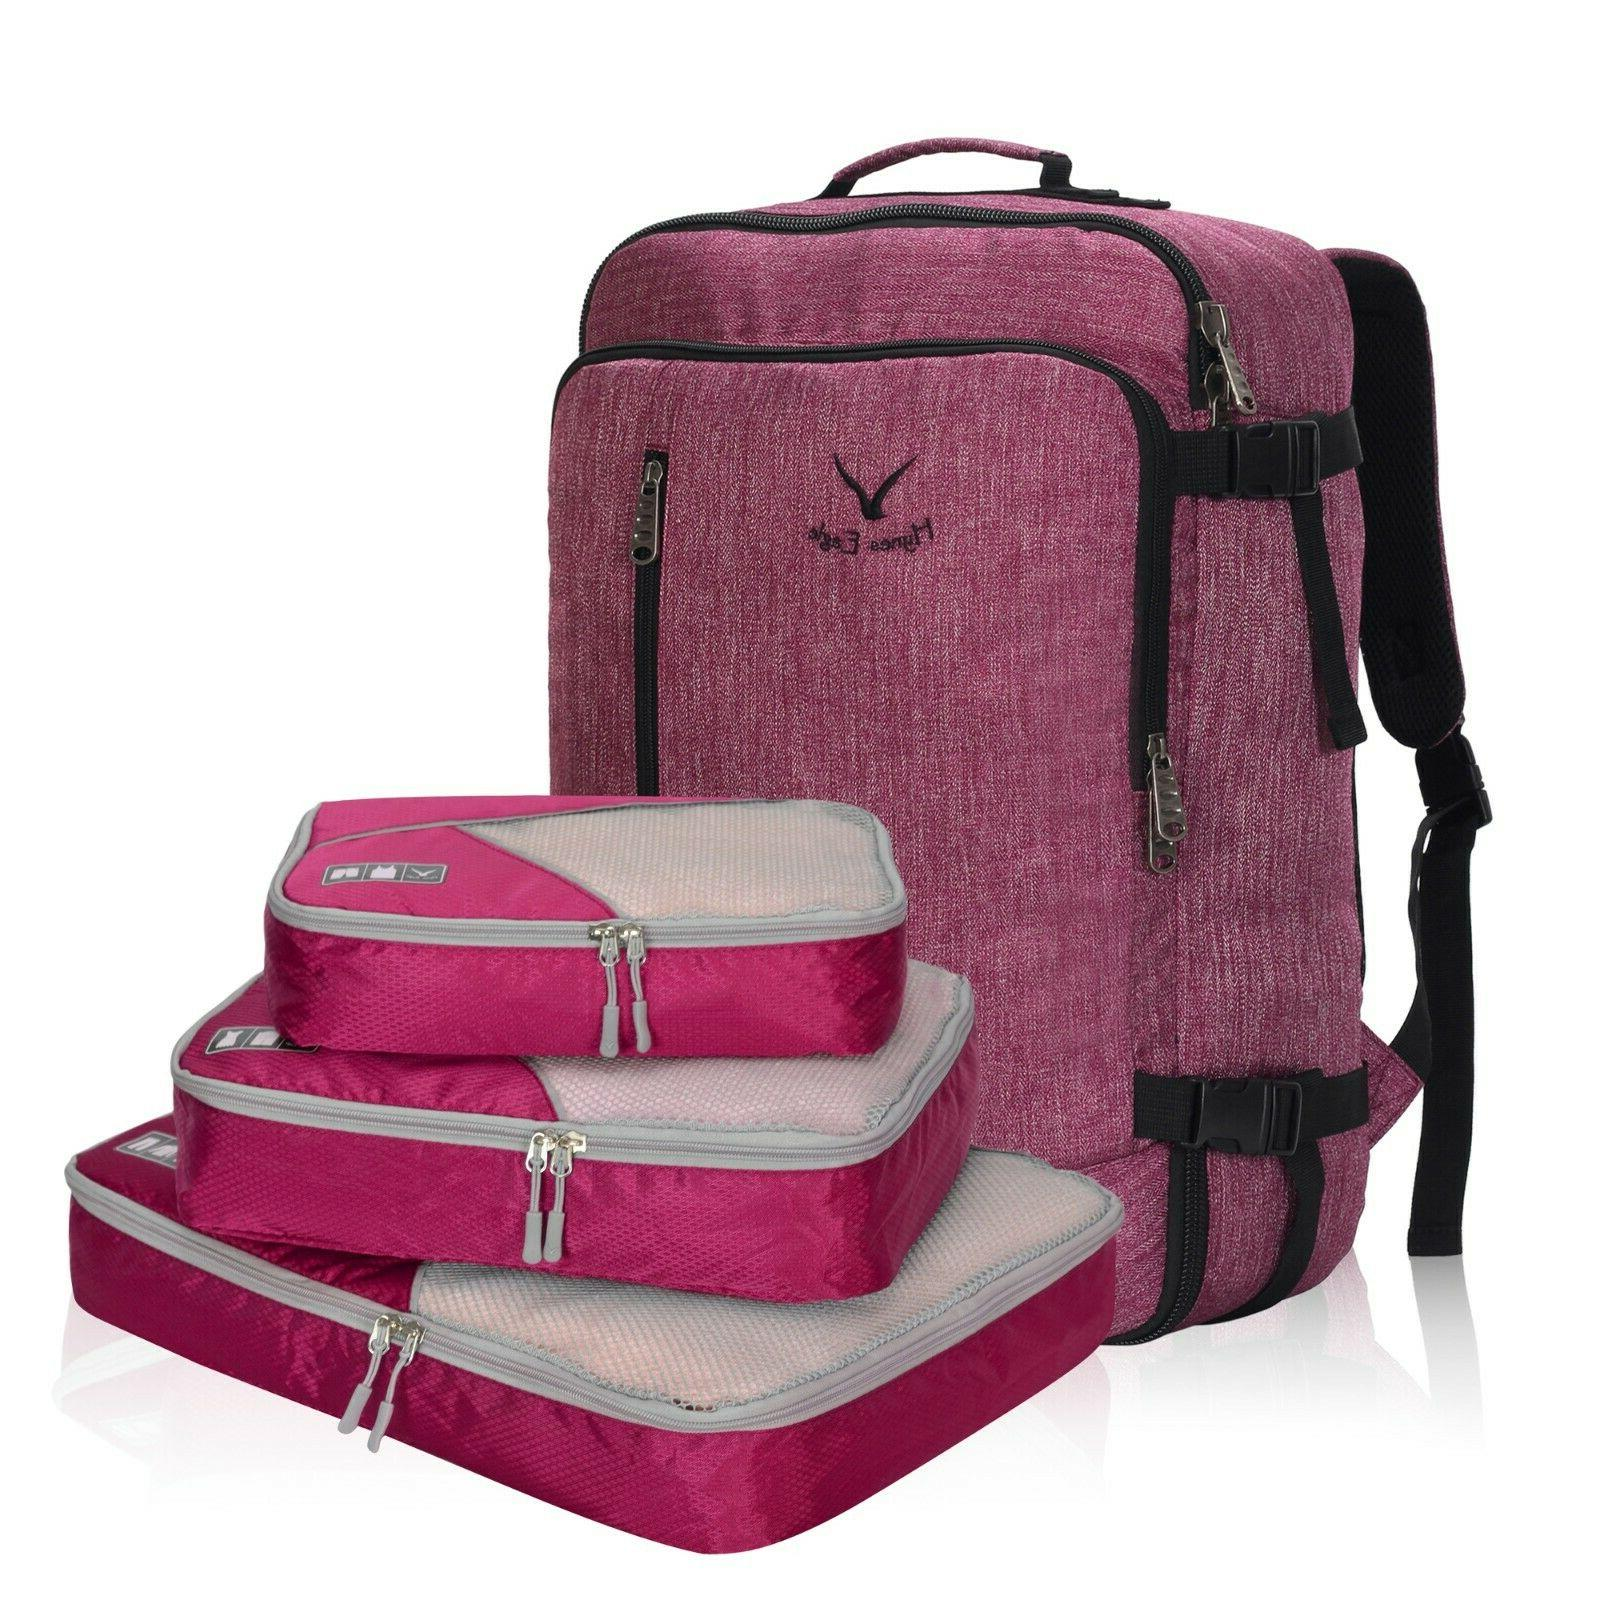 38l convertible carry on flight approved travel